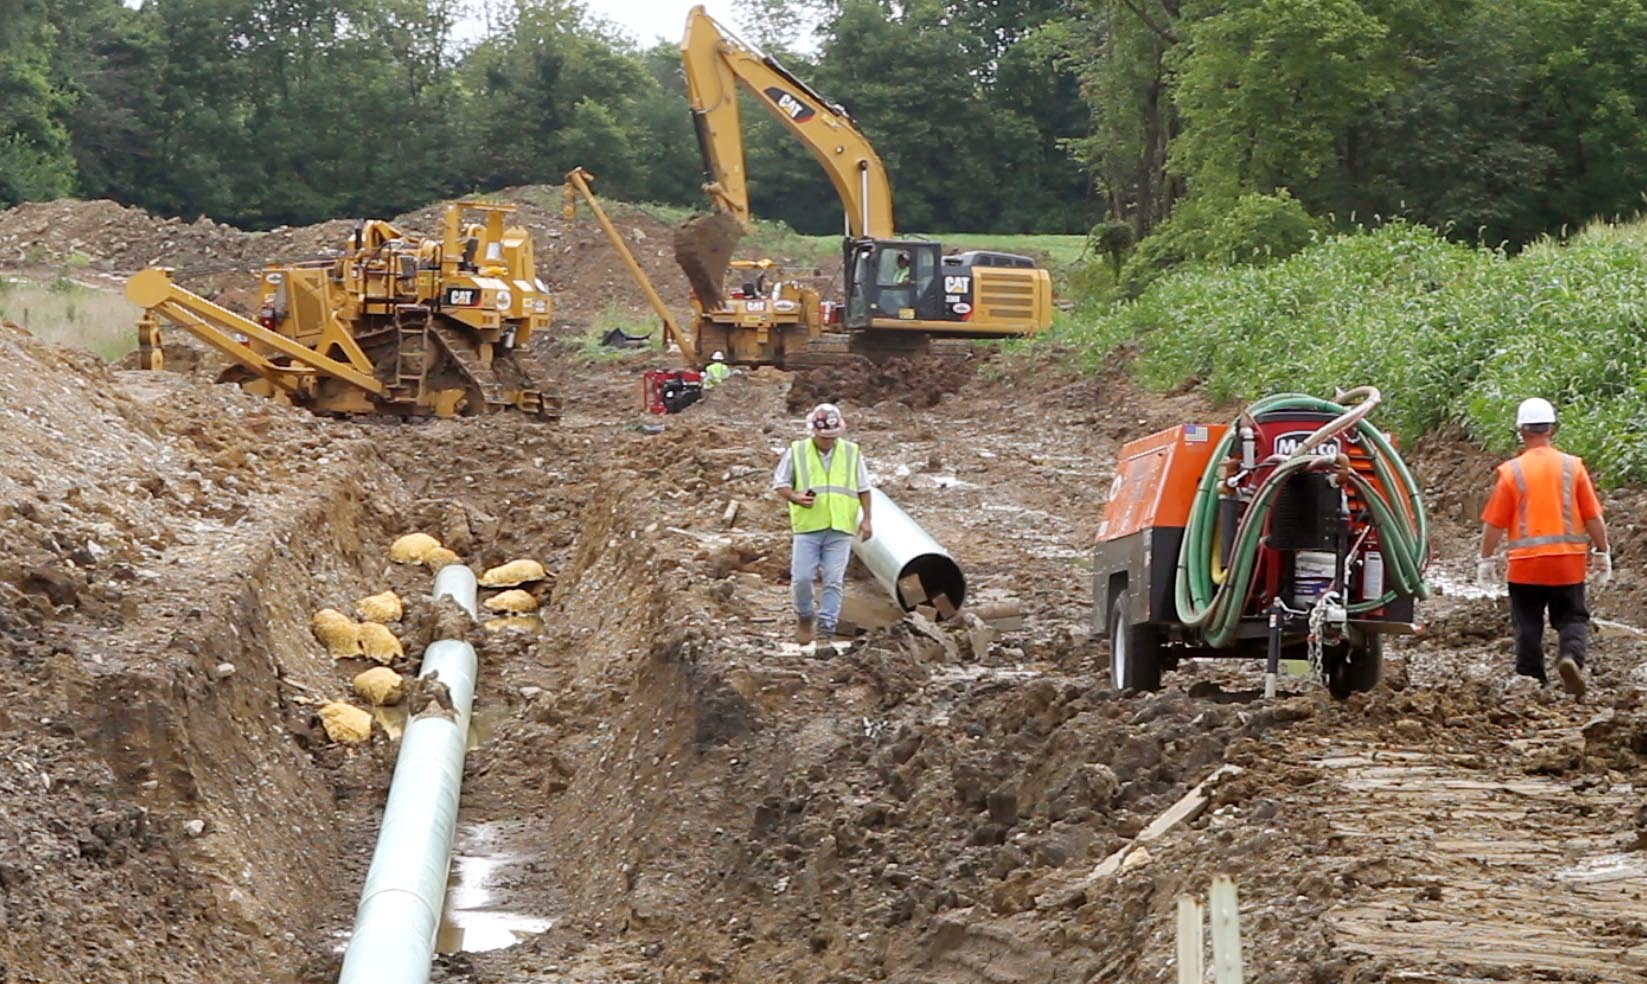 Ohio S Natural Gas Boom Brings Flurry Of Pipeline